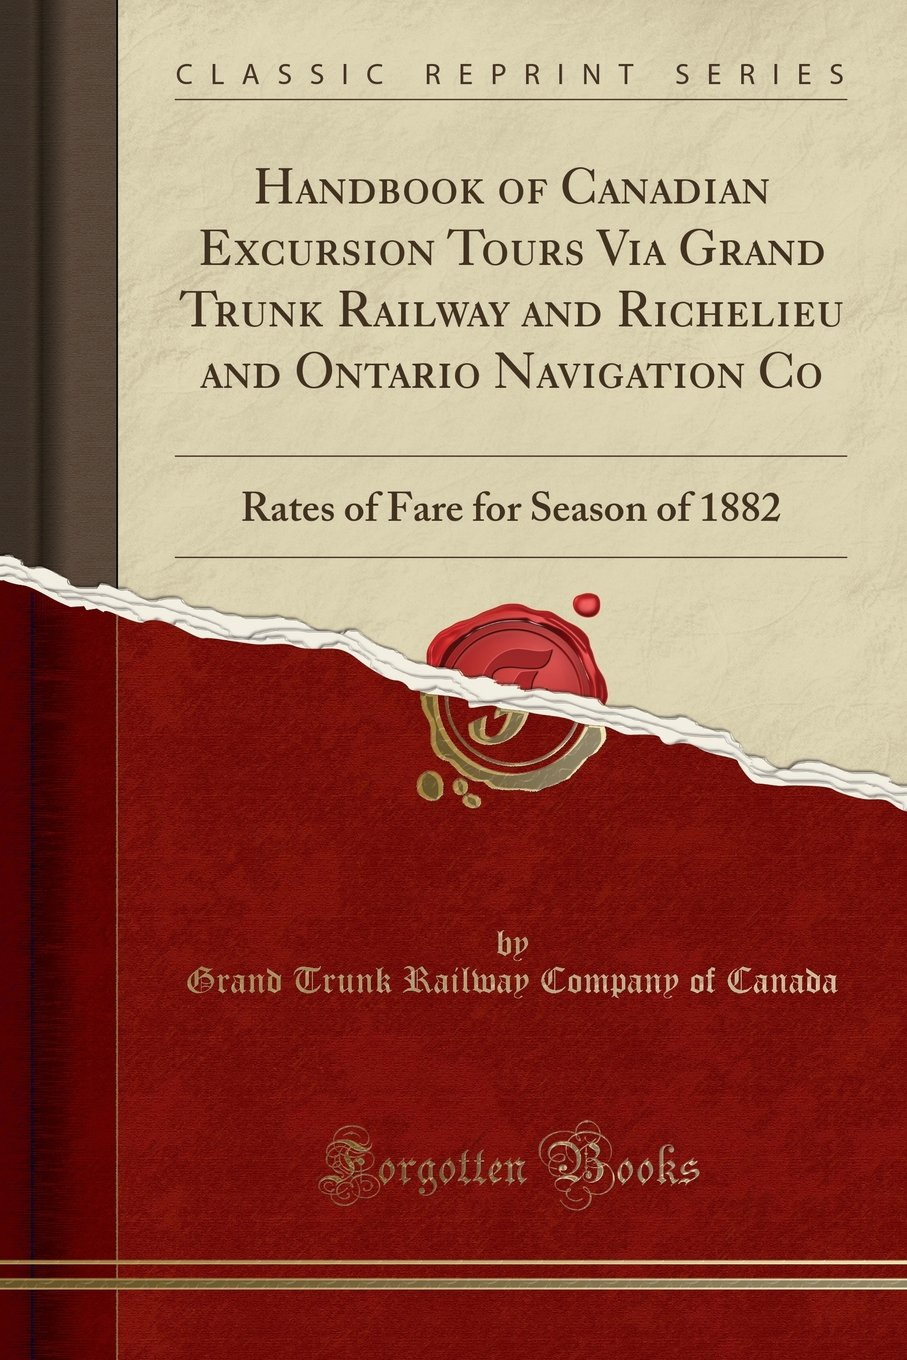 Download Handbook of Canadian Excursion Tours Via Grand Trunk Railway and Richelieu and Ontario Navigation Co: Rates of Fare for Season of 1882 (Classic Reprint) ebook